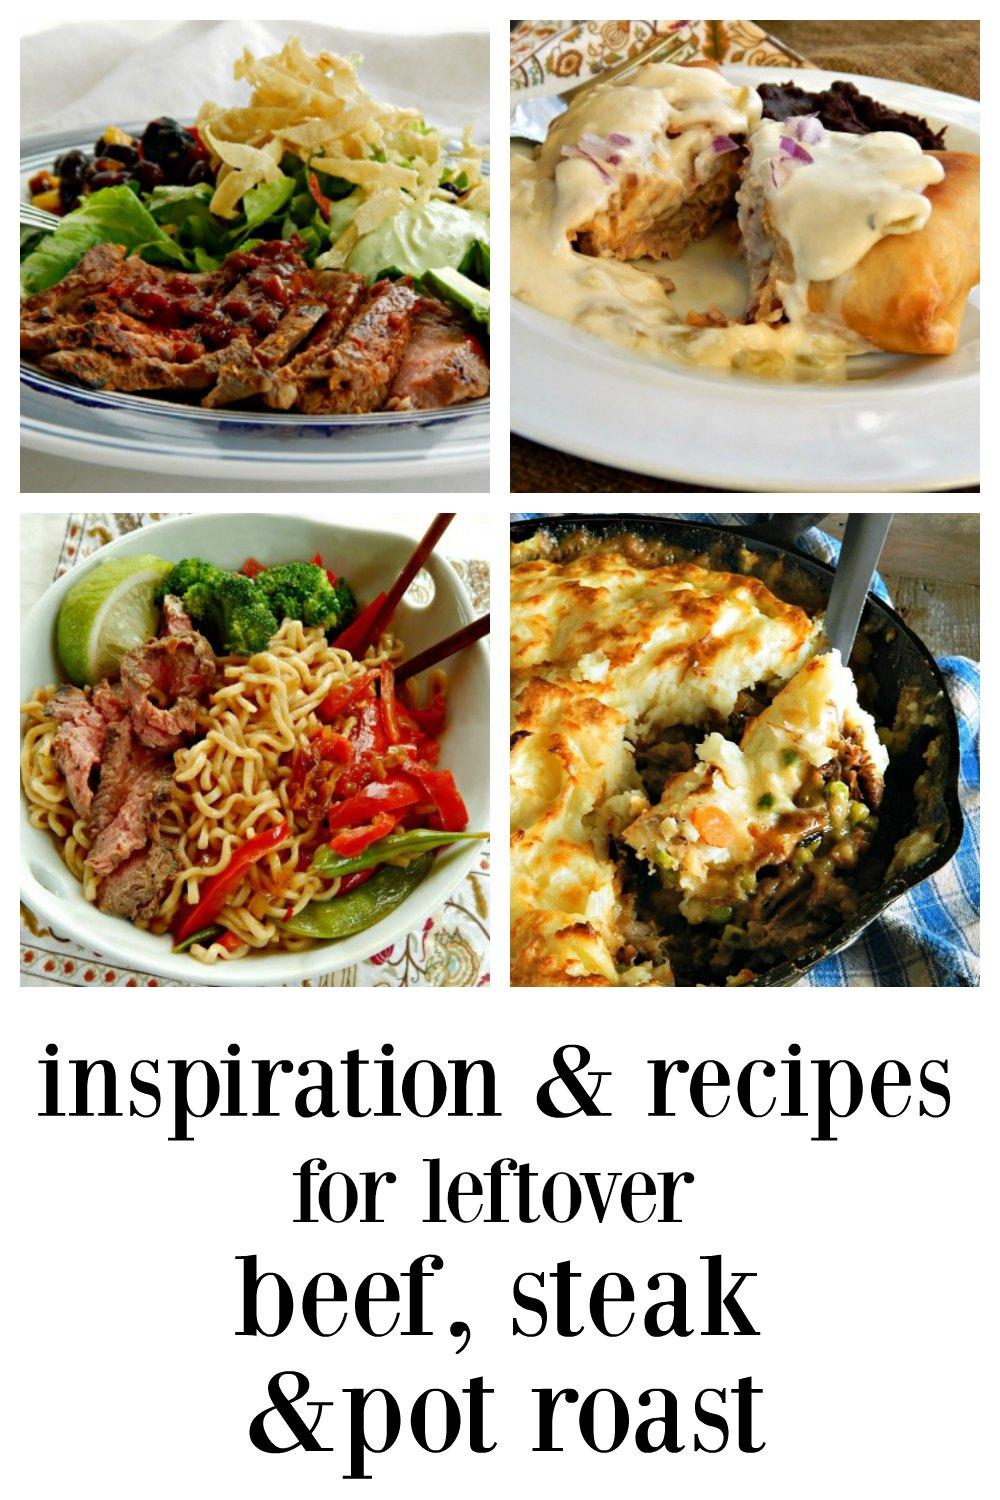 If you want some Inspiration and Recipes for Leftover Beef, Steal or Pot Roast look no further! Here are family faves, tried and true, some better than the original dinner. Around 40 recipes and no big galleries! #LeftoverBeef #BeefLeftovers #BeefRecipes #LeftoverBeefRecipes